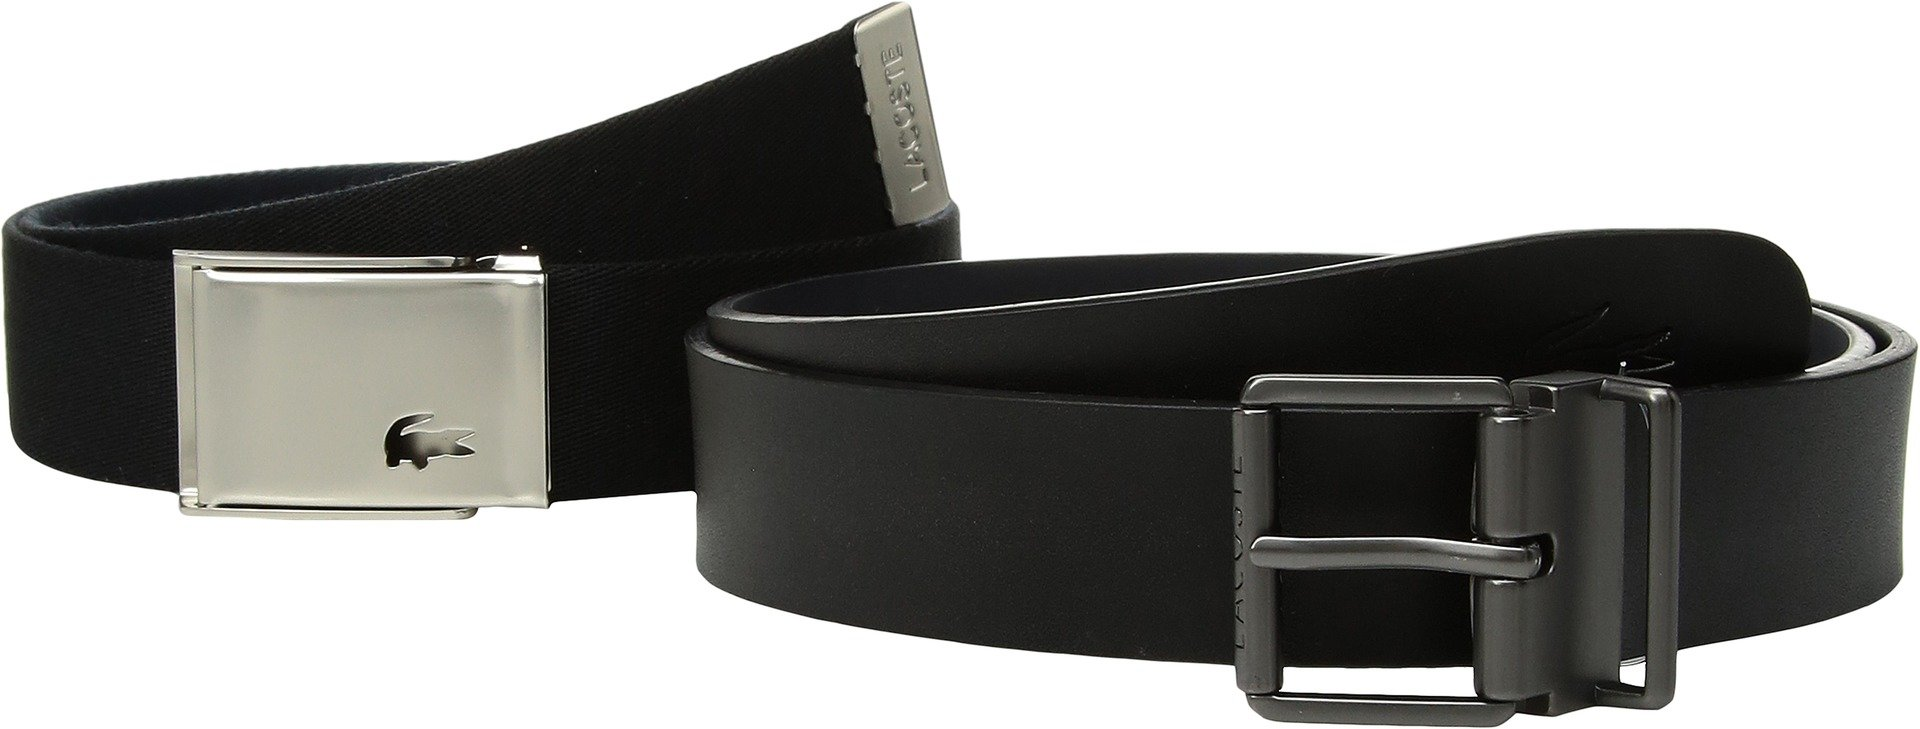 Lacoste Mens Dual Buckle Belt Black/Navy 100 (40'') One Size